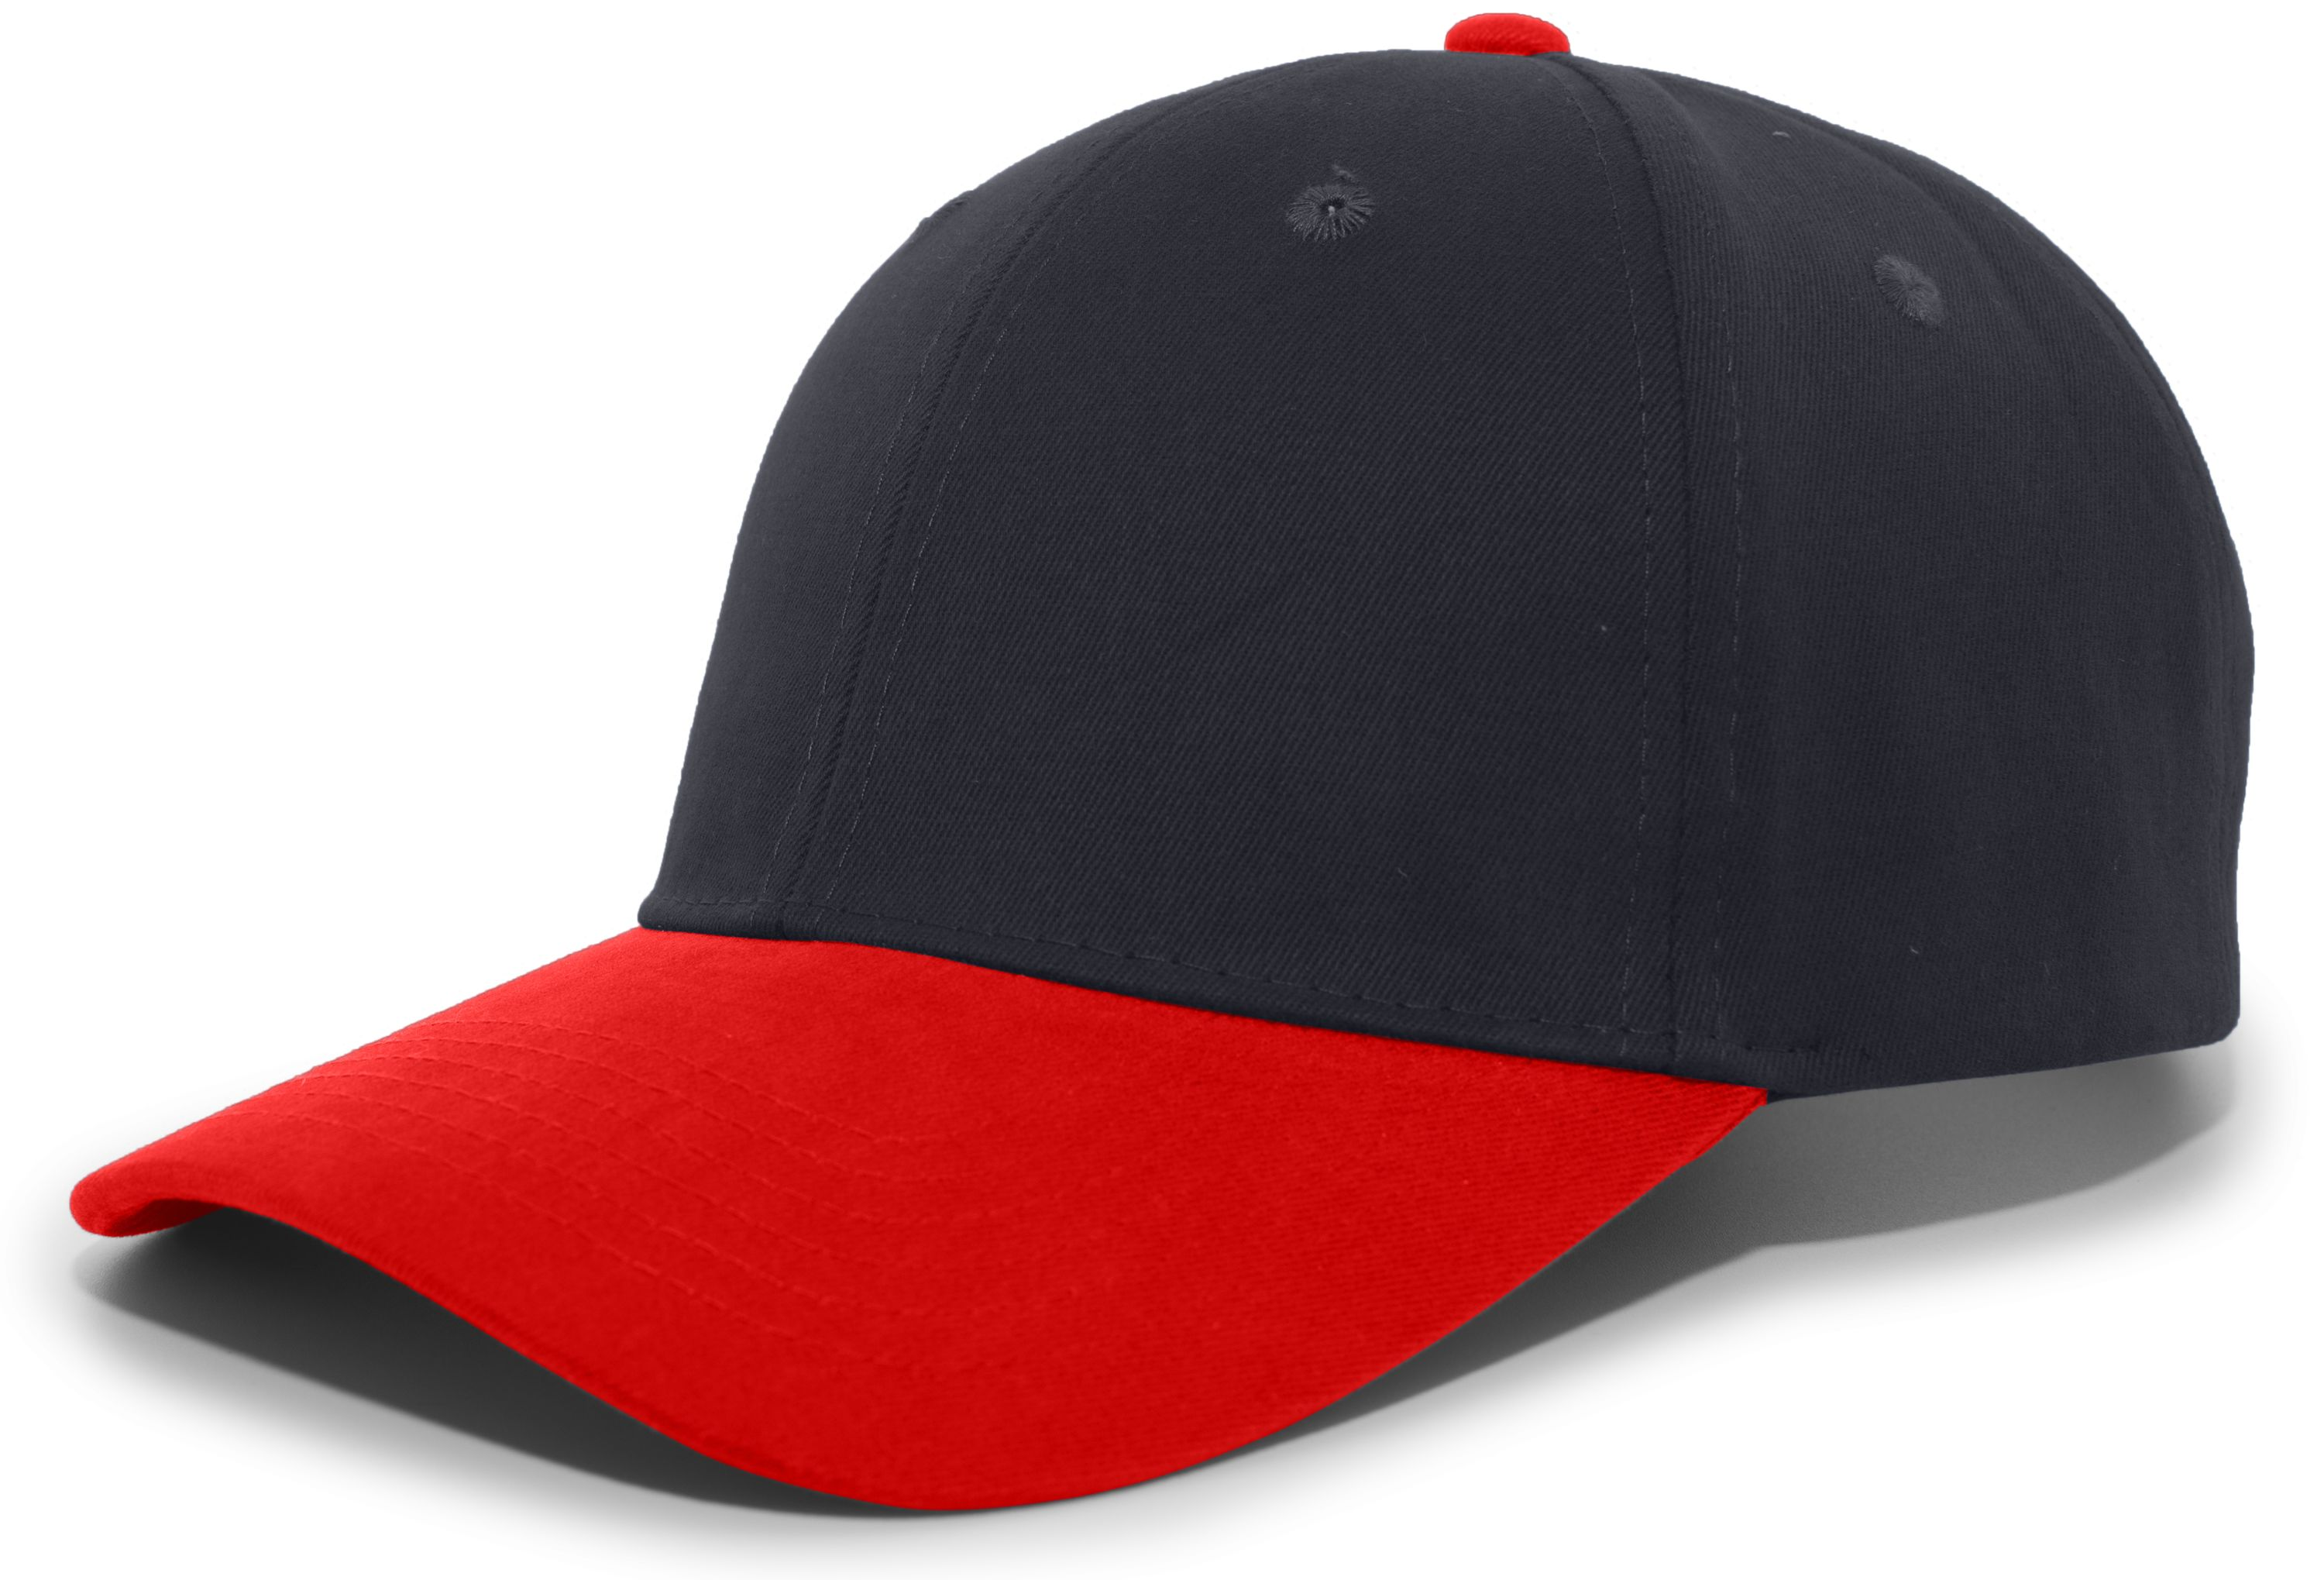 Brushed Cotton Twill Hook-And-Loop Adjustable Cap - NAVY/RED